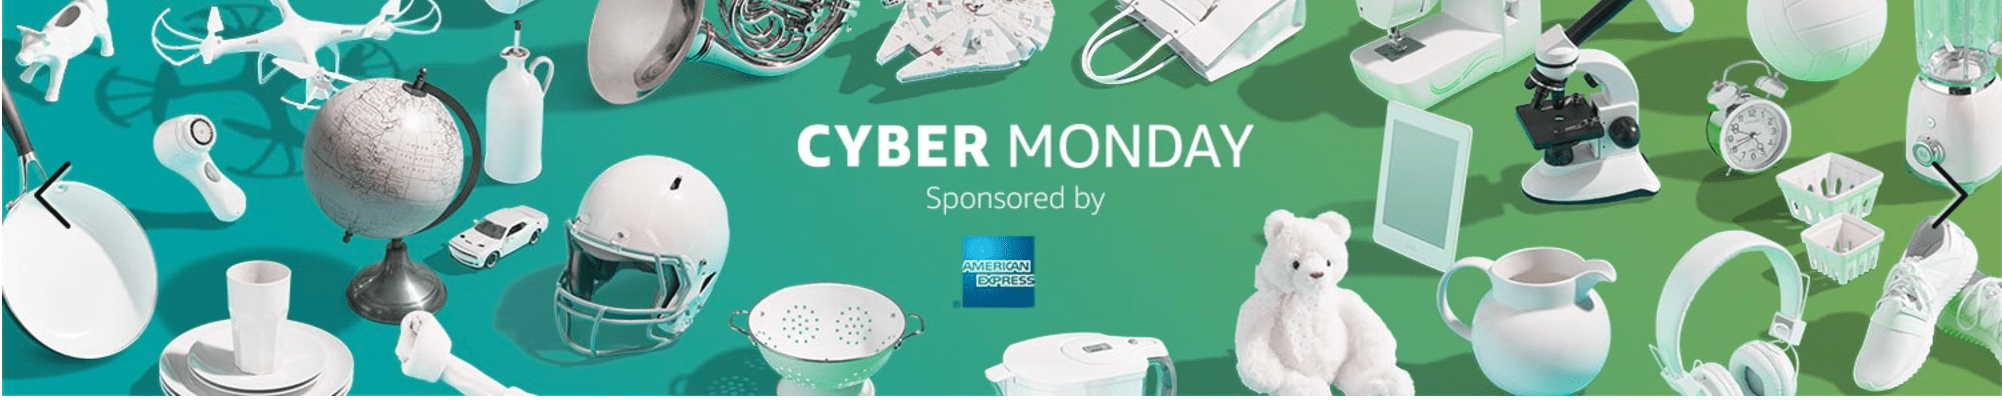 Amazon Canada Cyber Monday 2016 Deals Week: Save Up To 75% Off